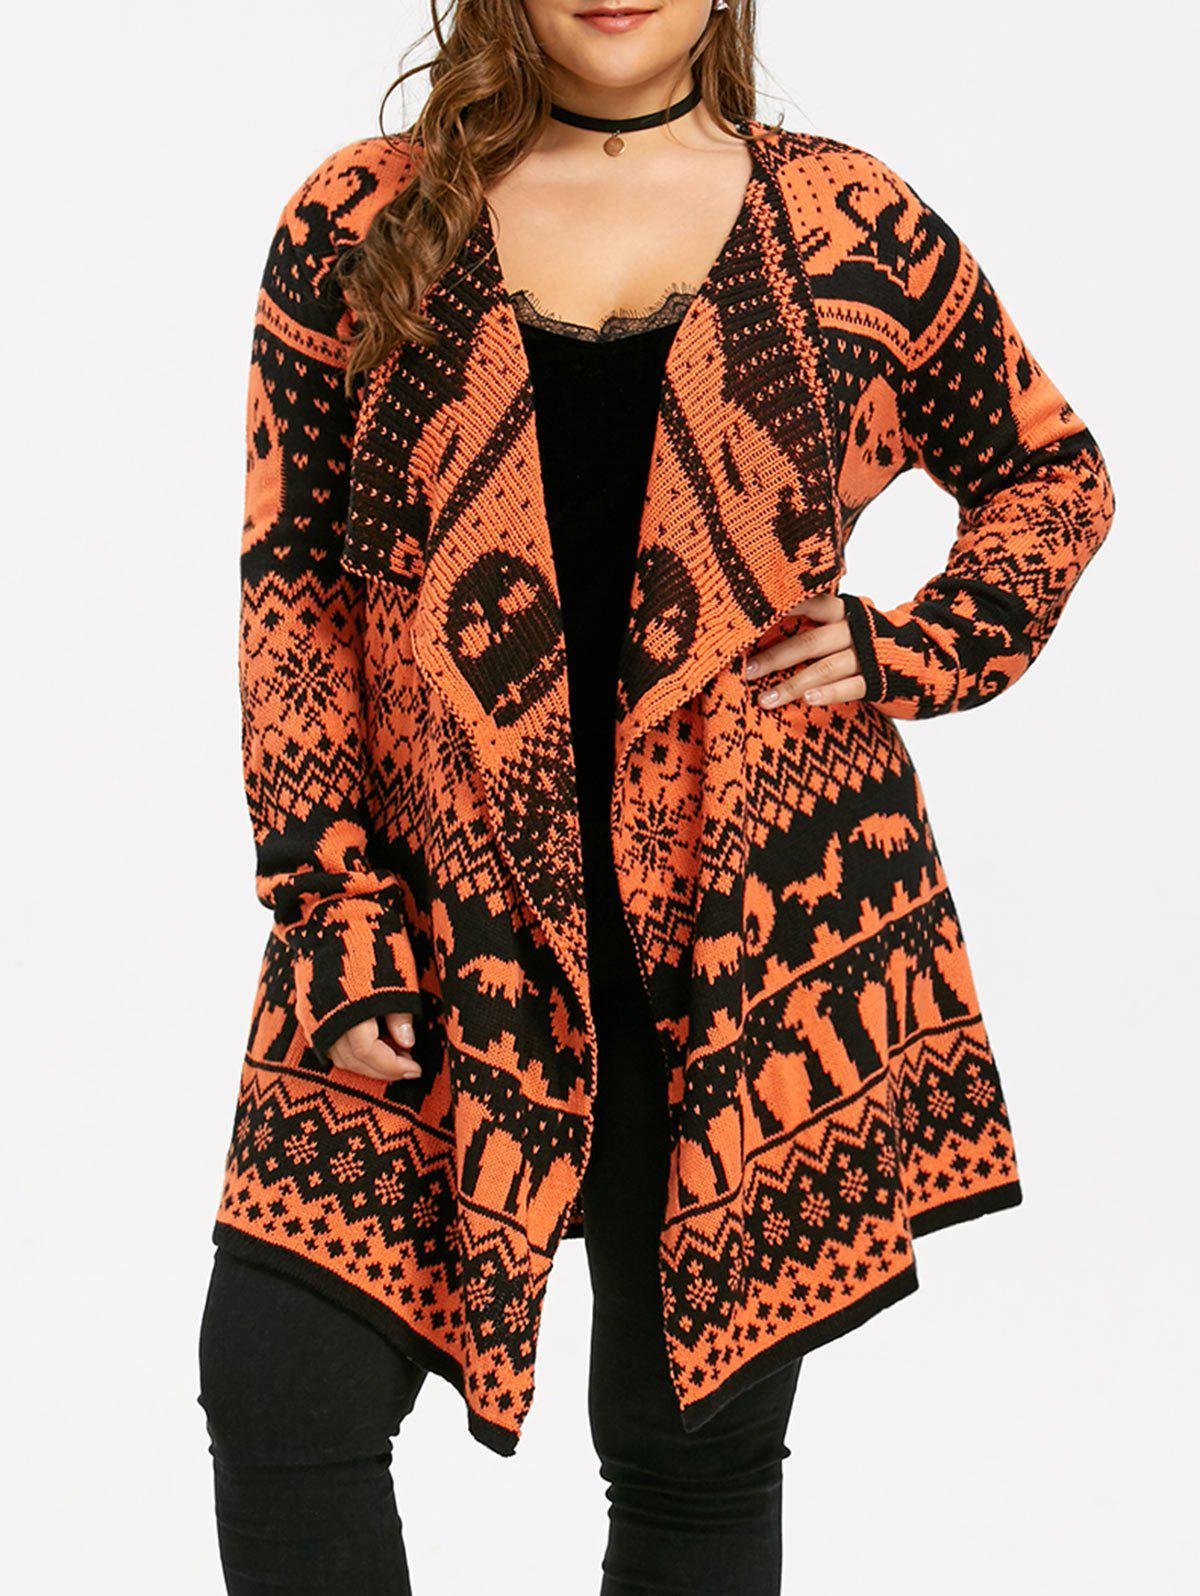 Halloween Plus Size Skull Sweater Drape CardiganWOMEN<br><br>Size: 5XL; Color: BLACK AND ORANGE; Type: Cardigans; Material: Polyester,Spandex; Sleeve Length: Full; Collar: Collarless; Style: Fashion; Season: Fall,Winter; Pattern Type: Others; Weight: 0.4700kg; Package Contents: 1 x Cardigan;